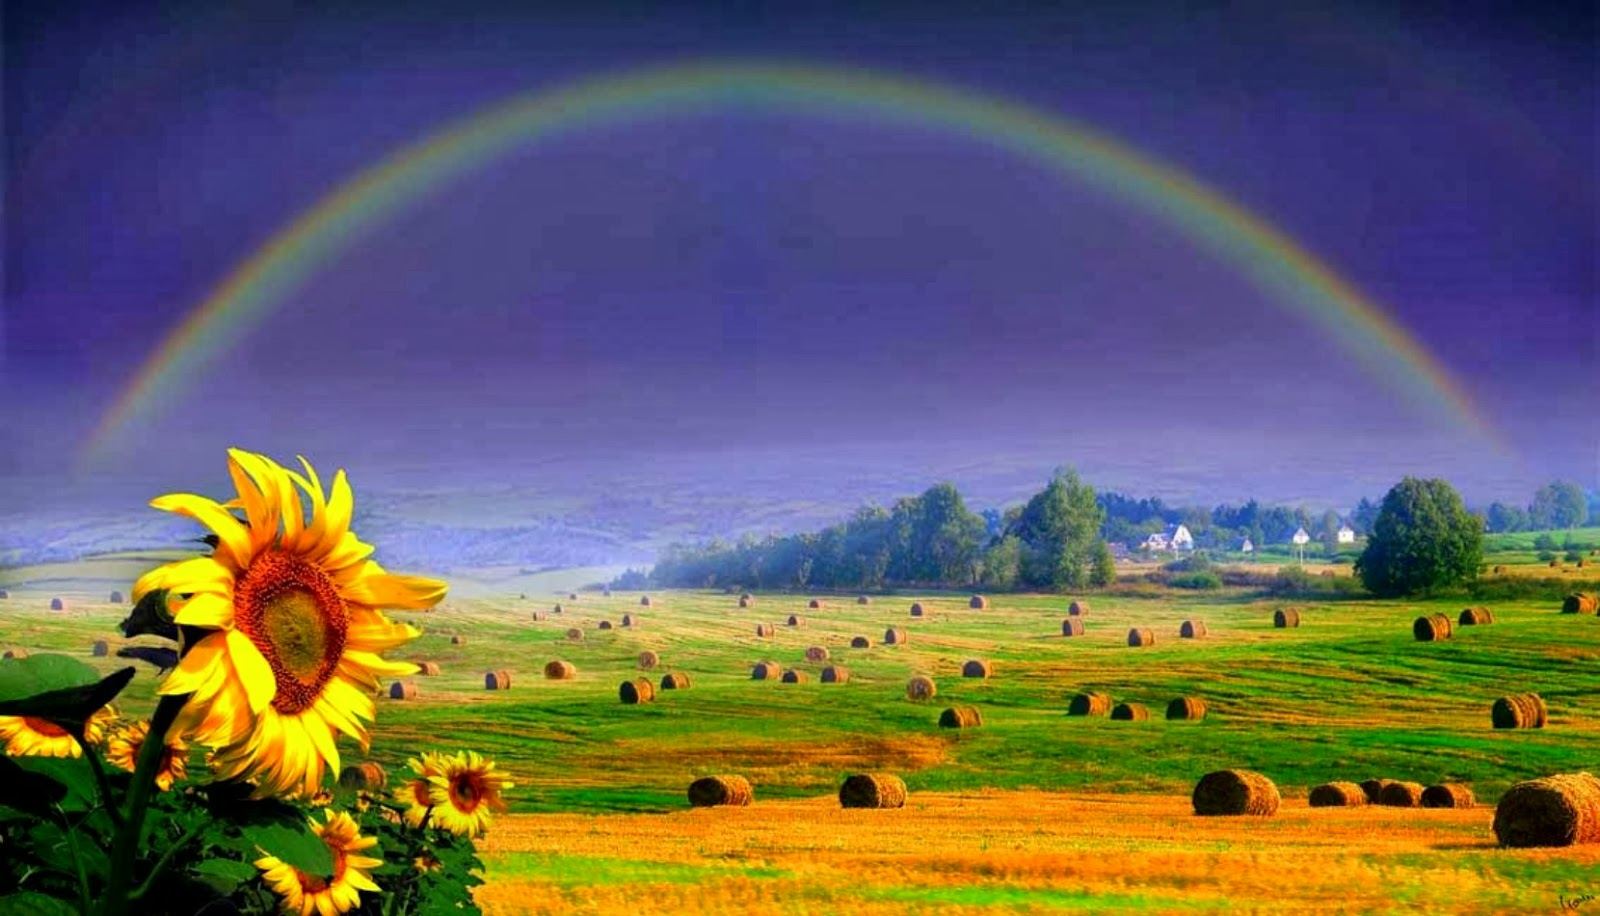 Download Rainbow Wallpapers | Most beautiful places in the ...